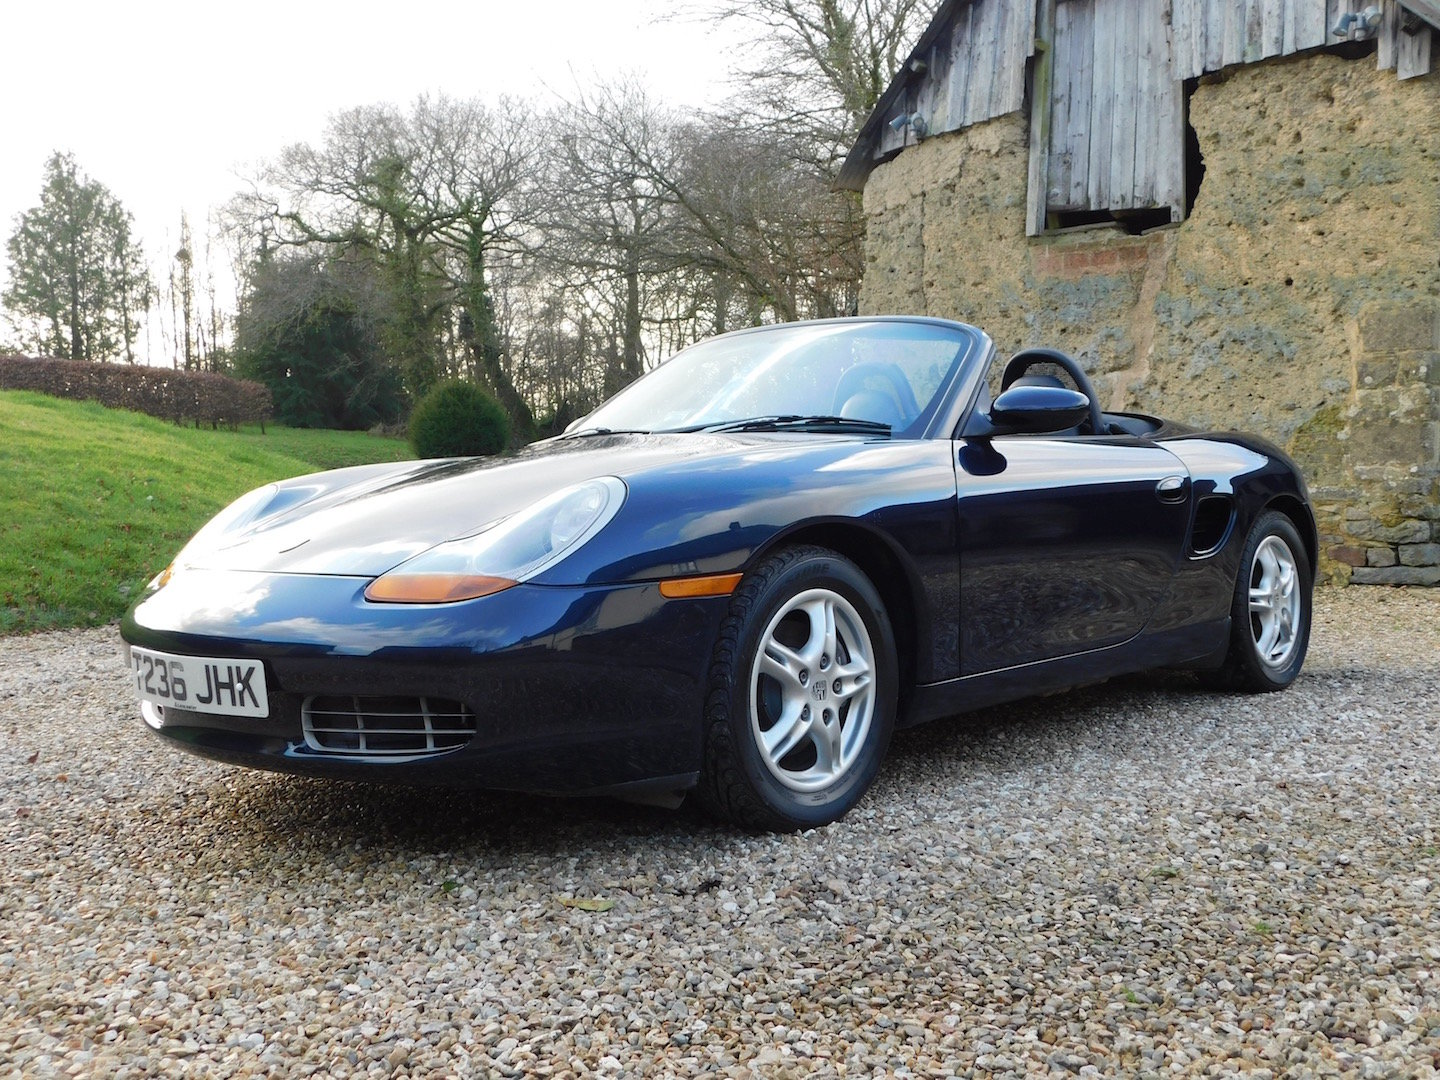 1999 Porsche 986 Boxster 2.5 - 44k miles, excellent throughout For Sale (picture 4 of 6)